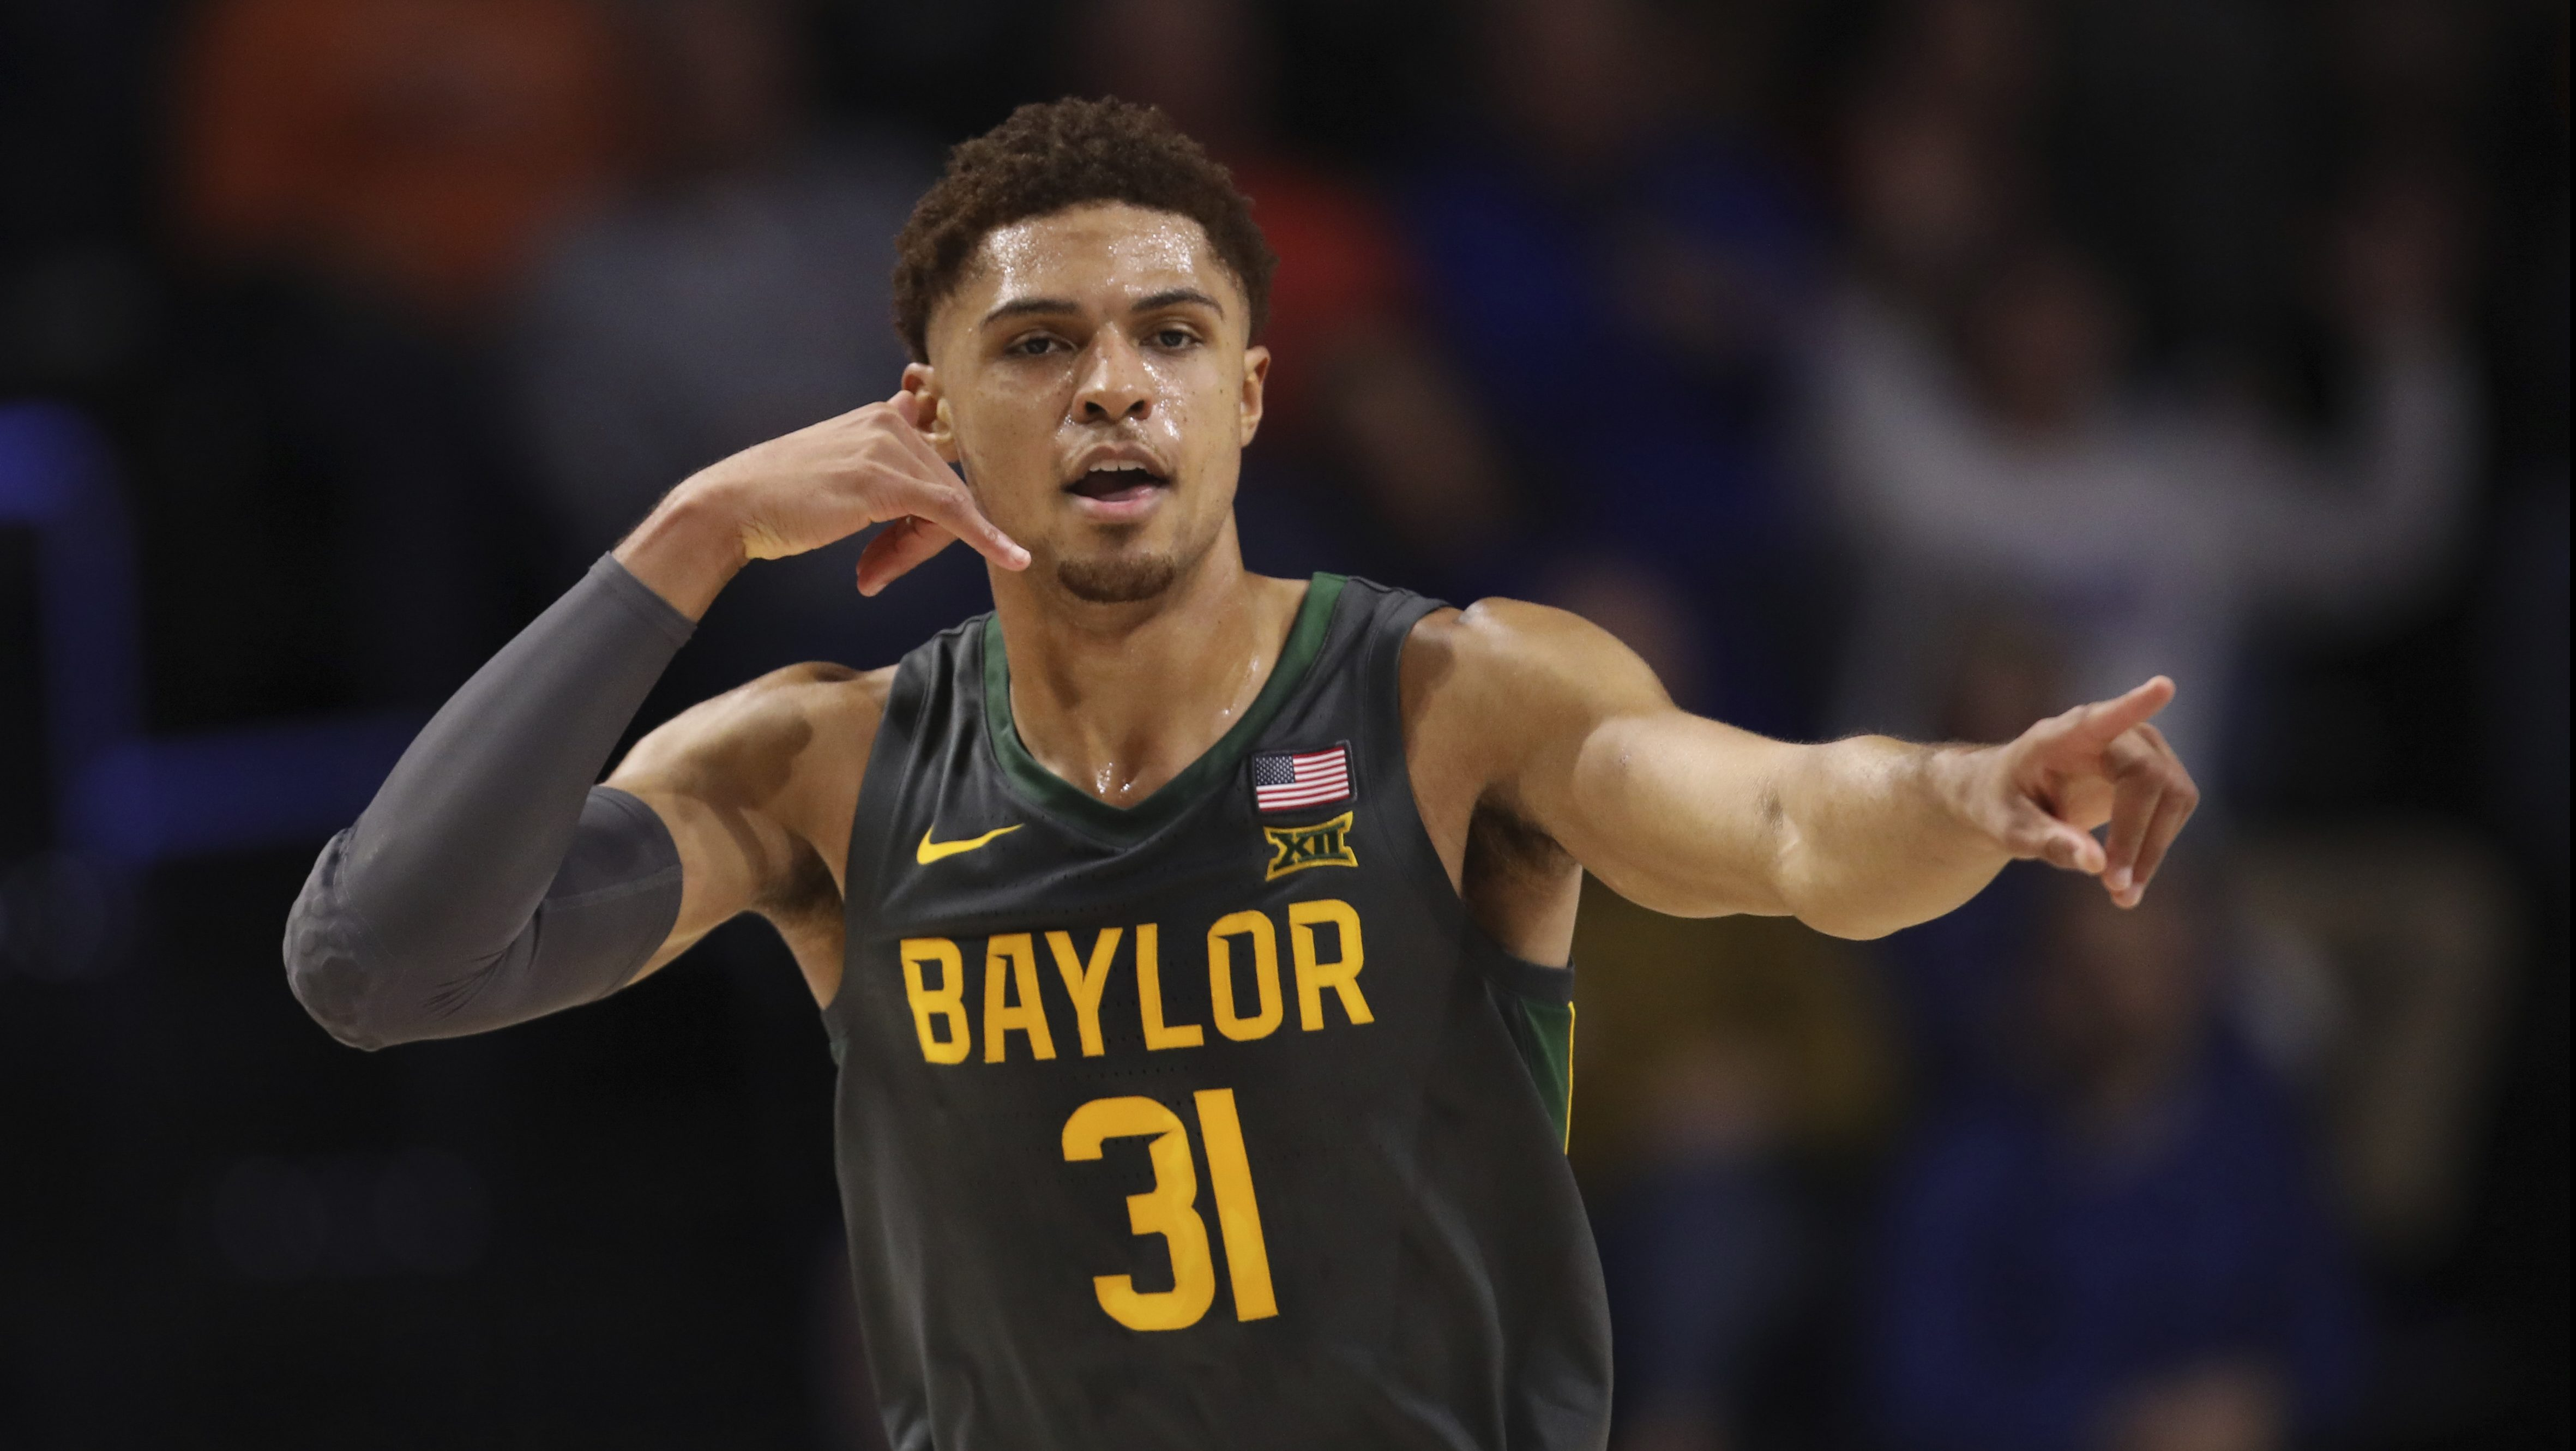 Bracketology: Baylor strengthens its grip on the No. 1 overall seed